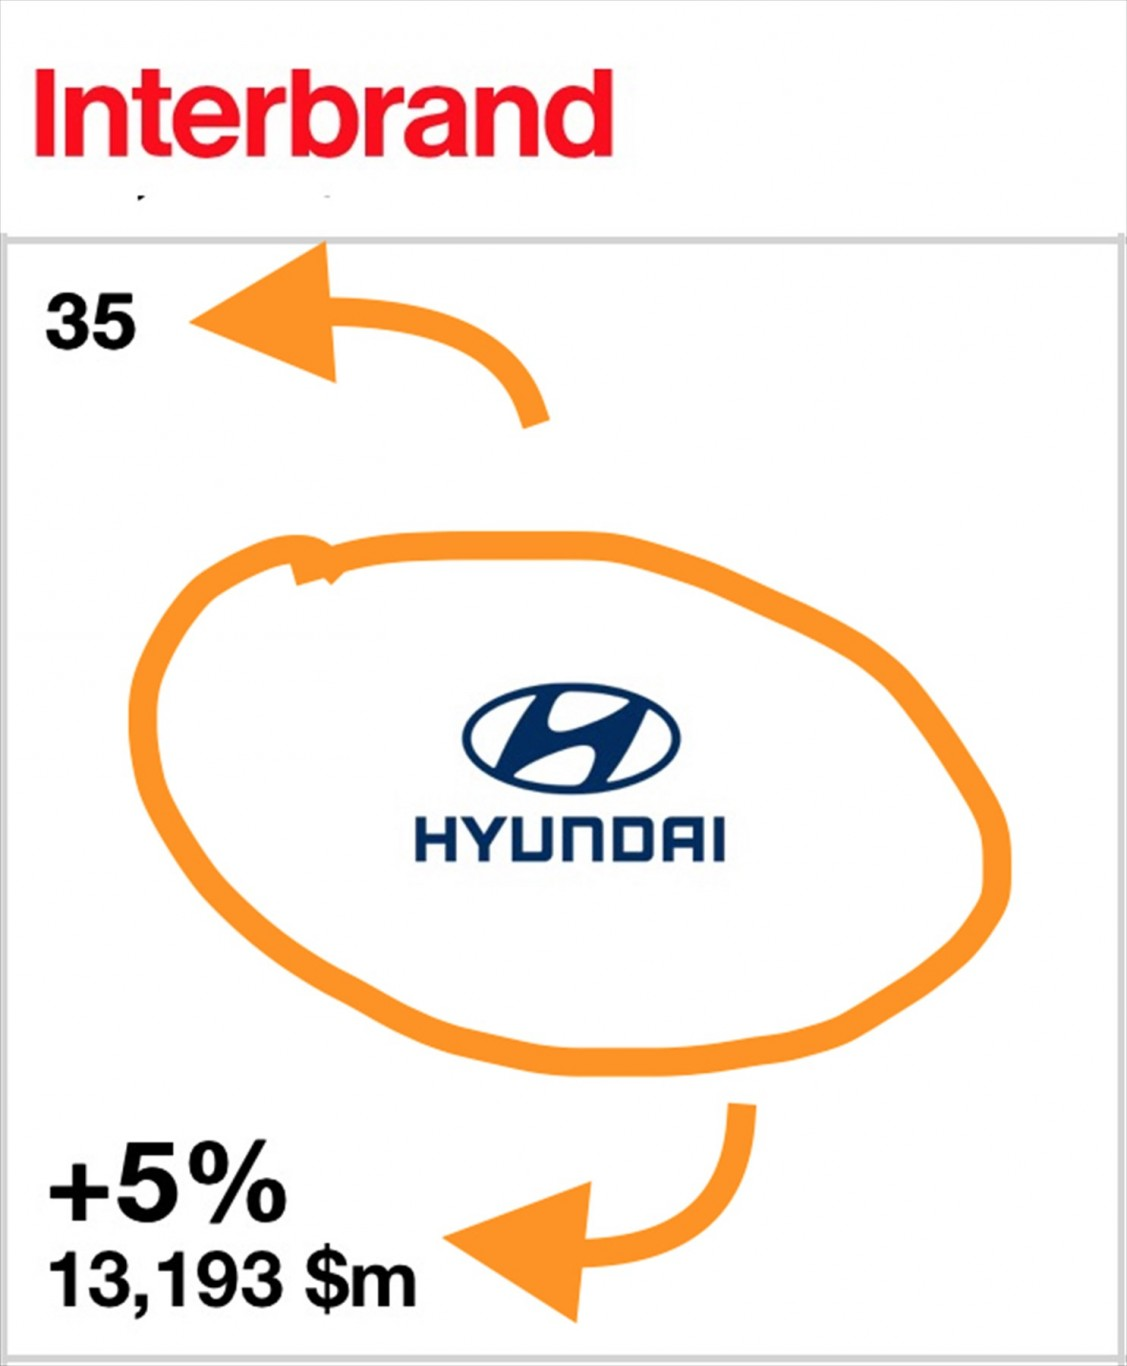 Hyundai again ranked among world's top-valued brands